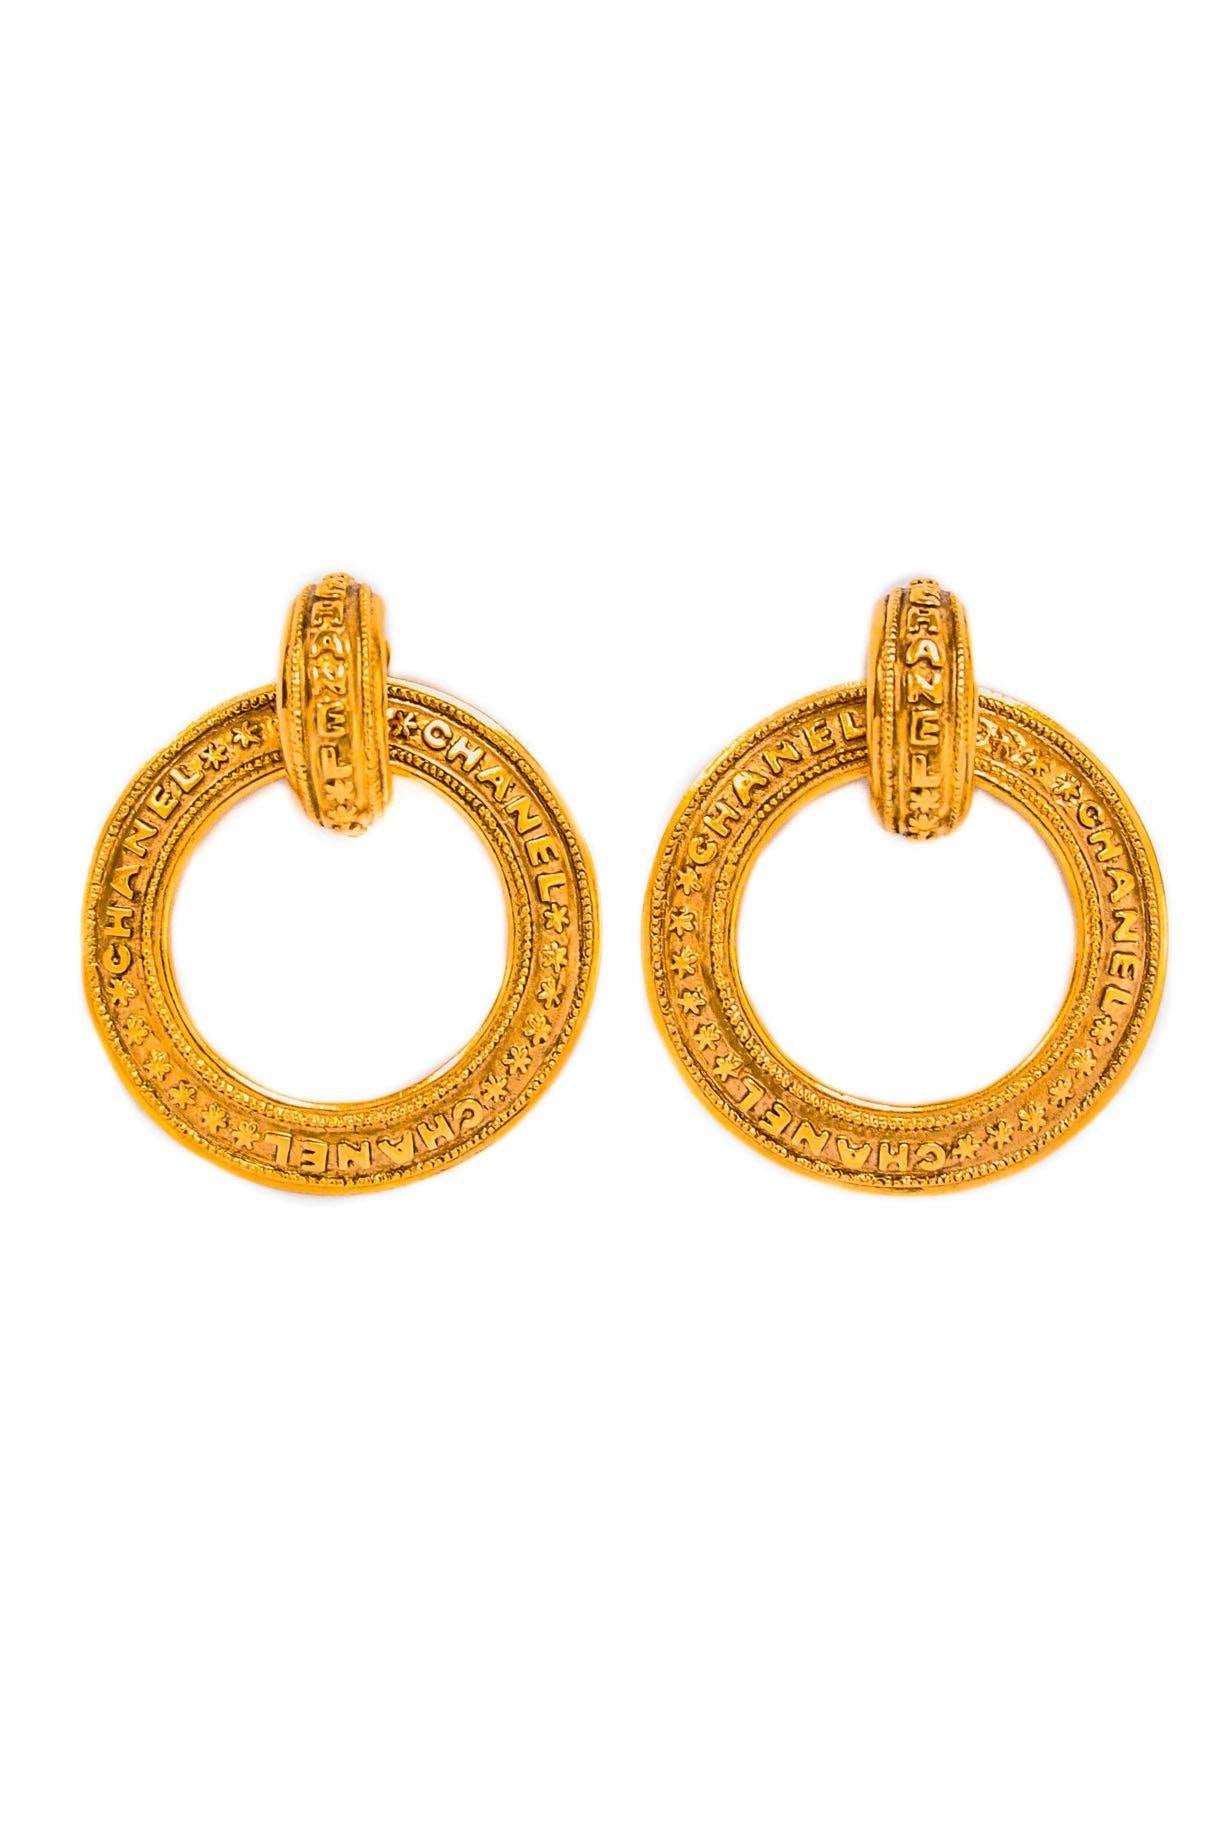 Vintage Chanel Stars Clip-on Hoop Earrings from Sweet and Spark